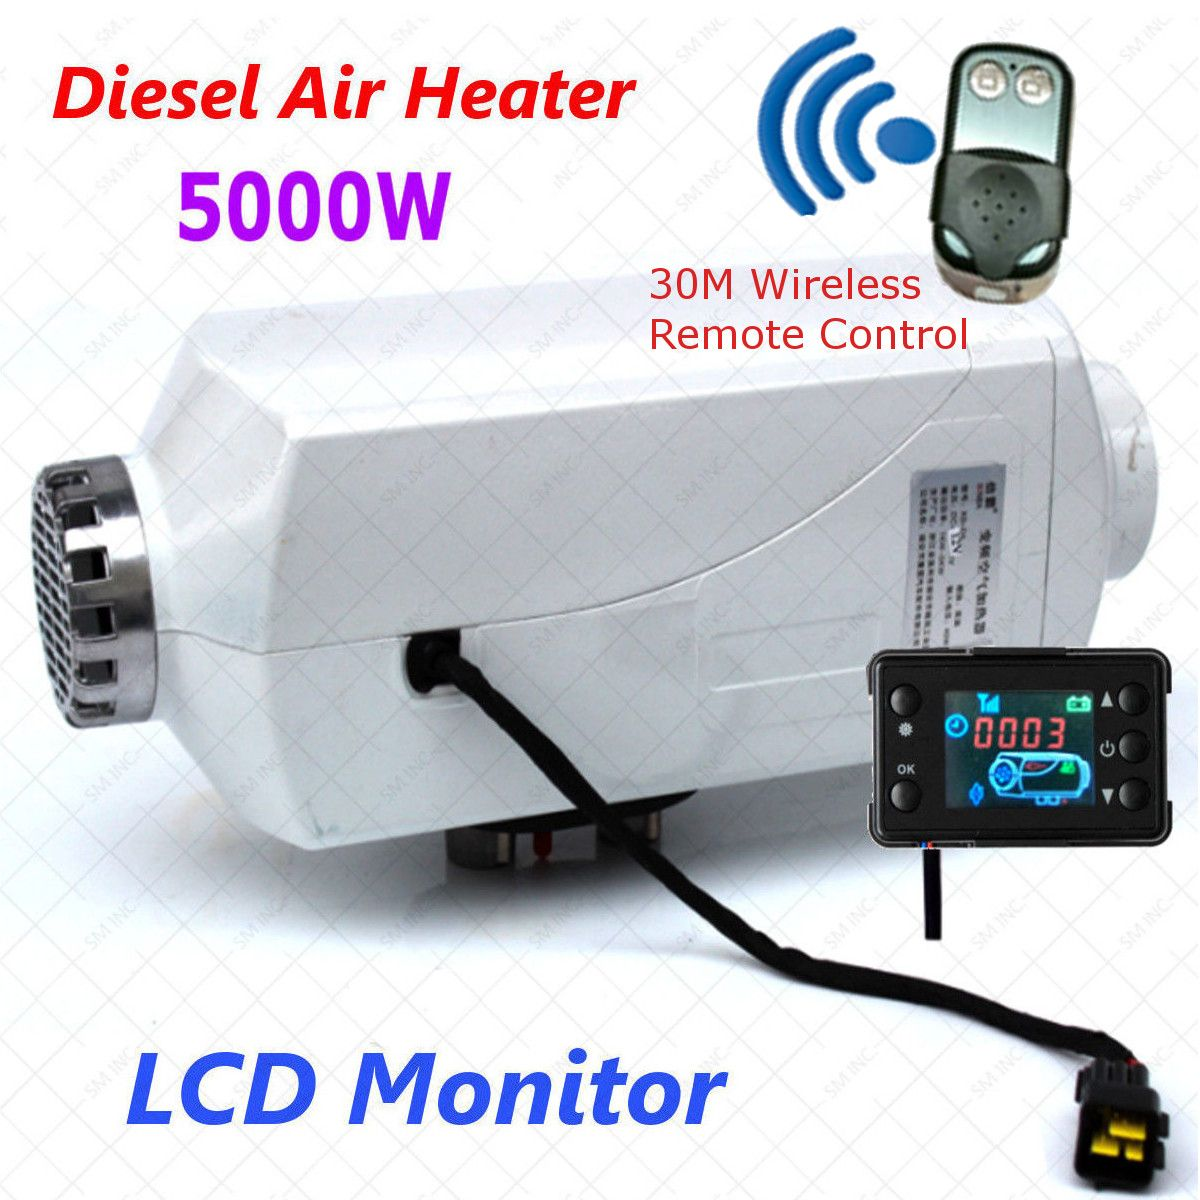 Car Heater 5000W Air diesel- Heater LCD Monitor 5KW 12V for trucks motor-homes boats bus With Renote Control